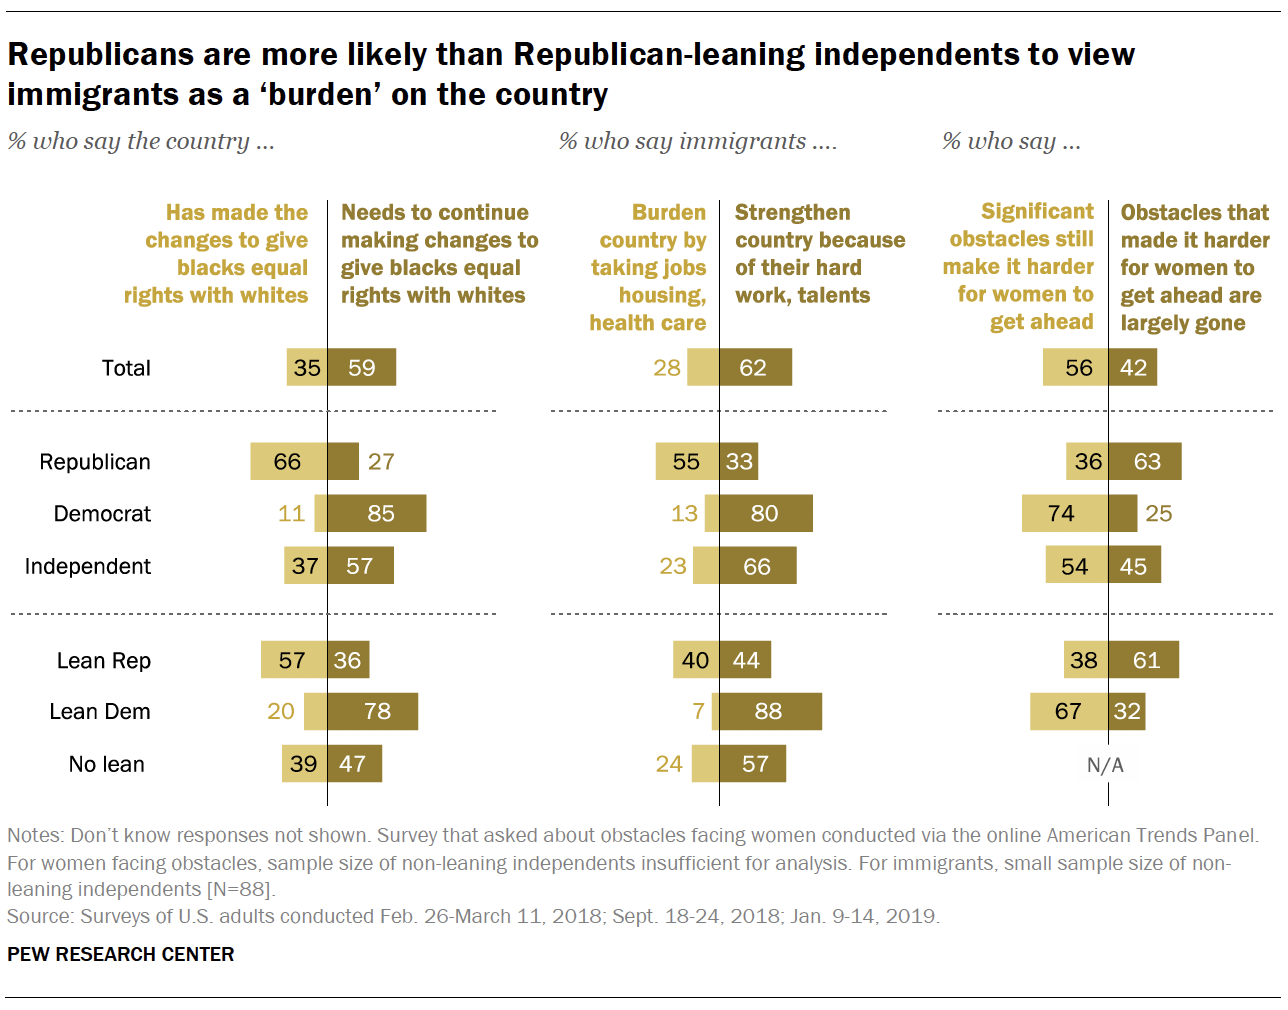 Republicans are more likely than Republican-leaning independents to view immigrants as a 'burden' on the country